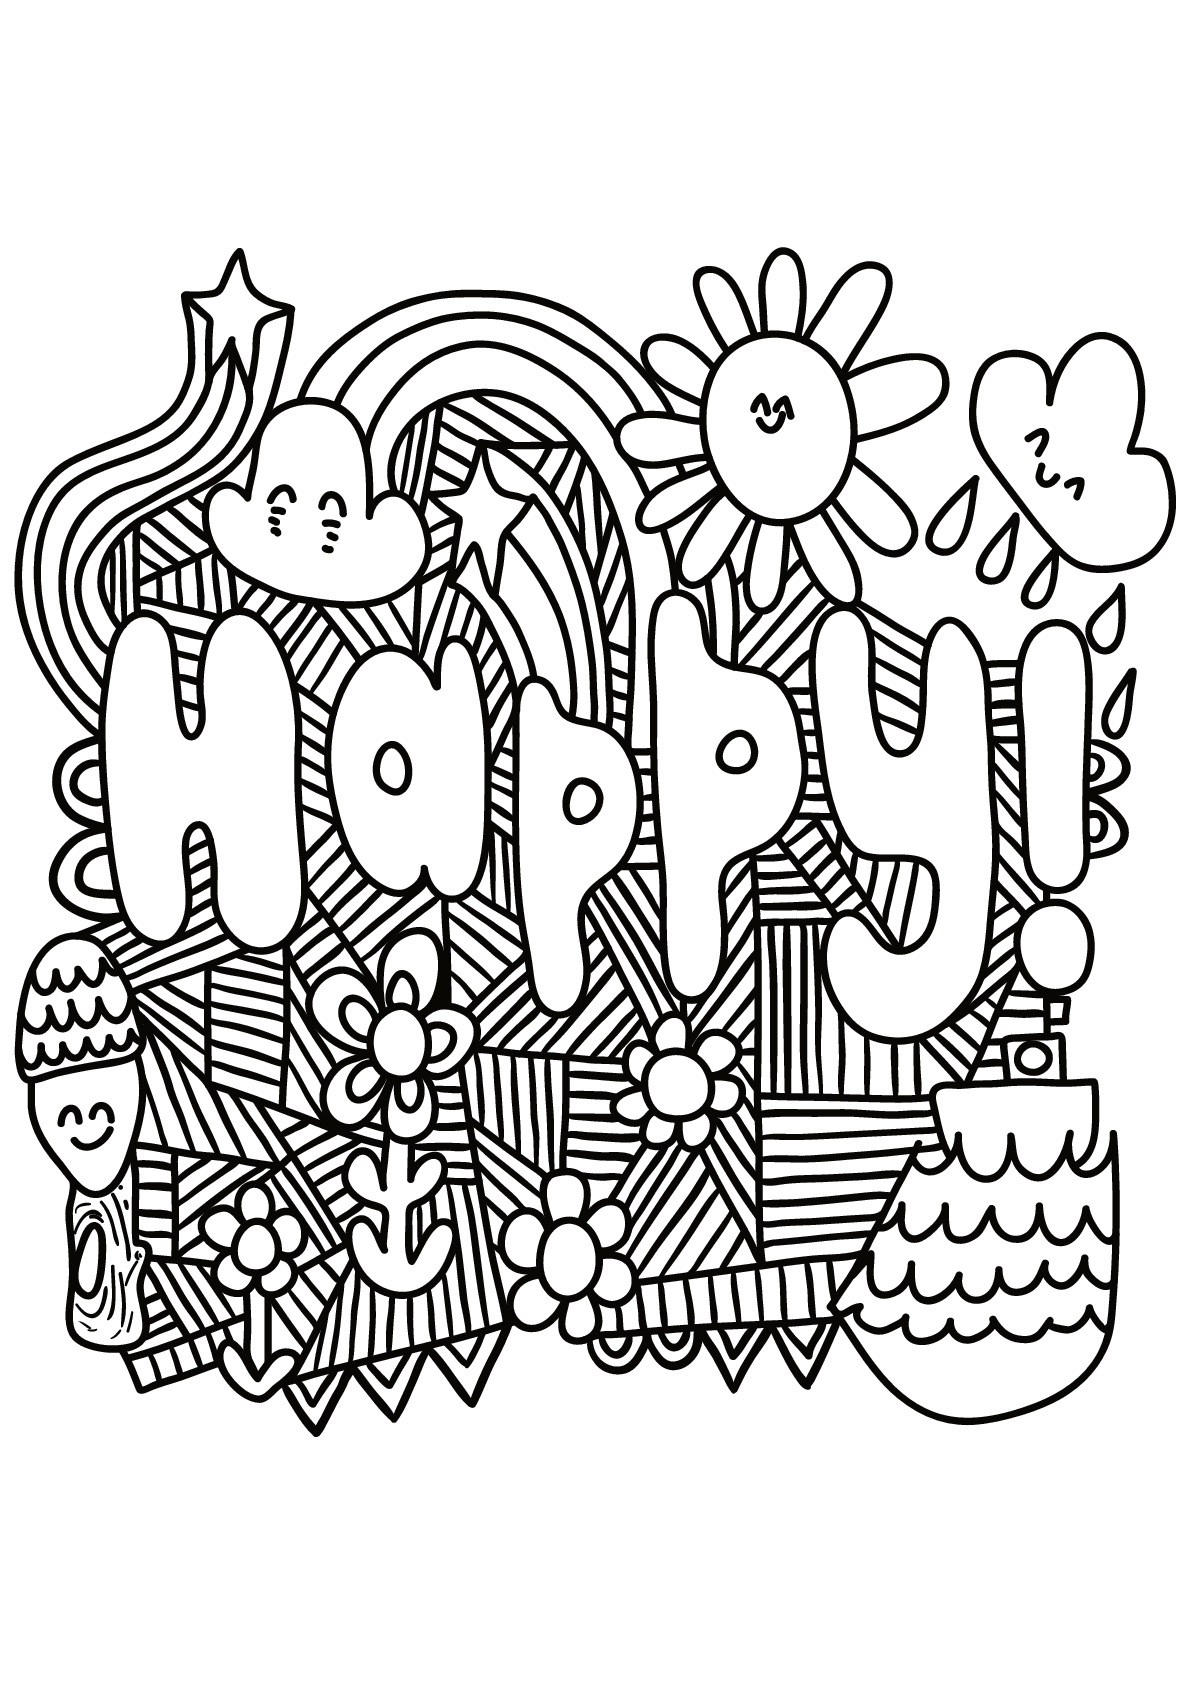 Quote Coloring Pages for Adults and Teens - Best Coloring ...   free coloring pages quotes